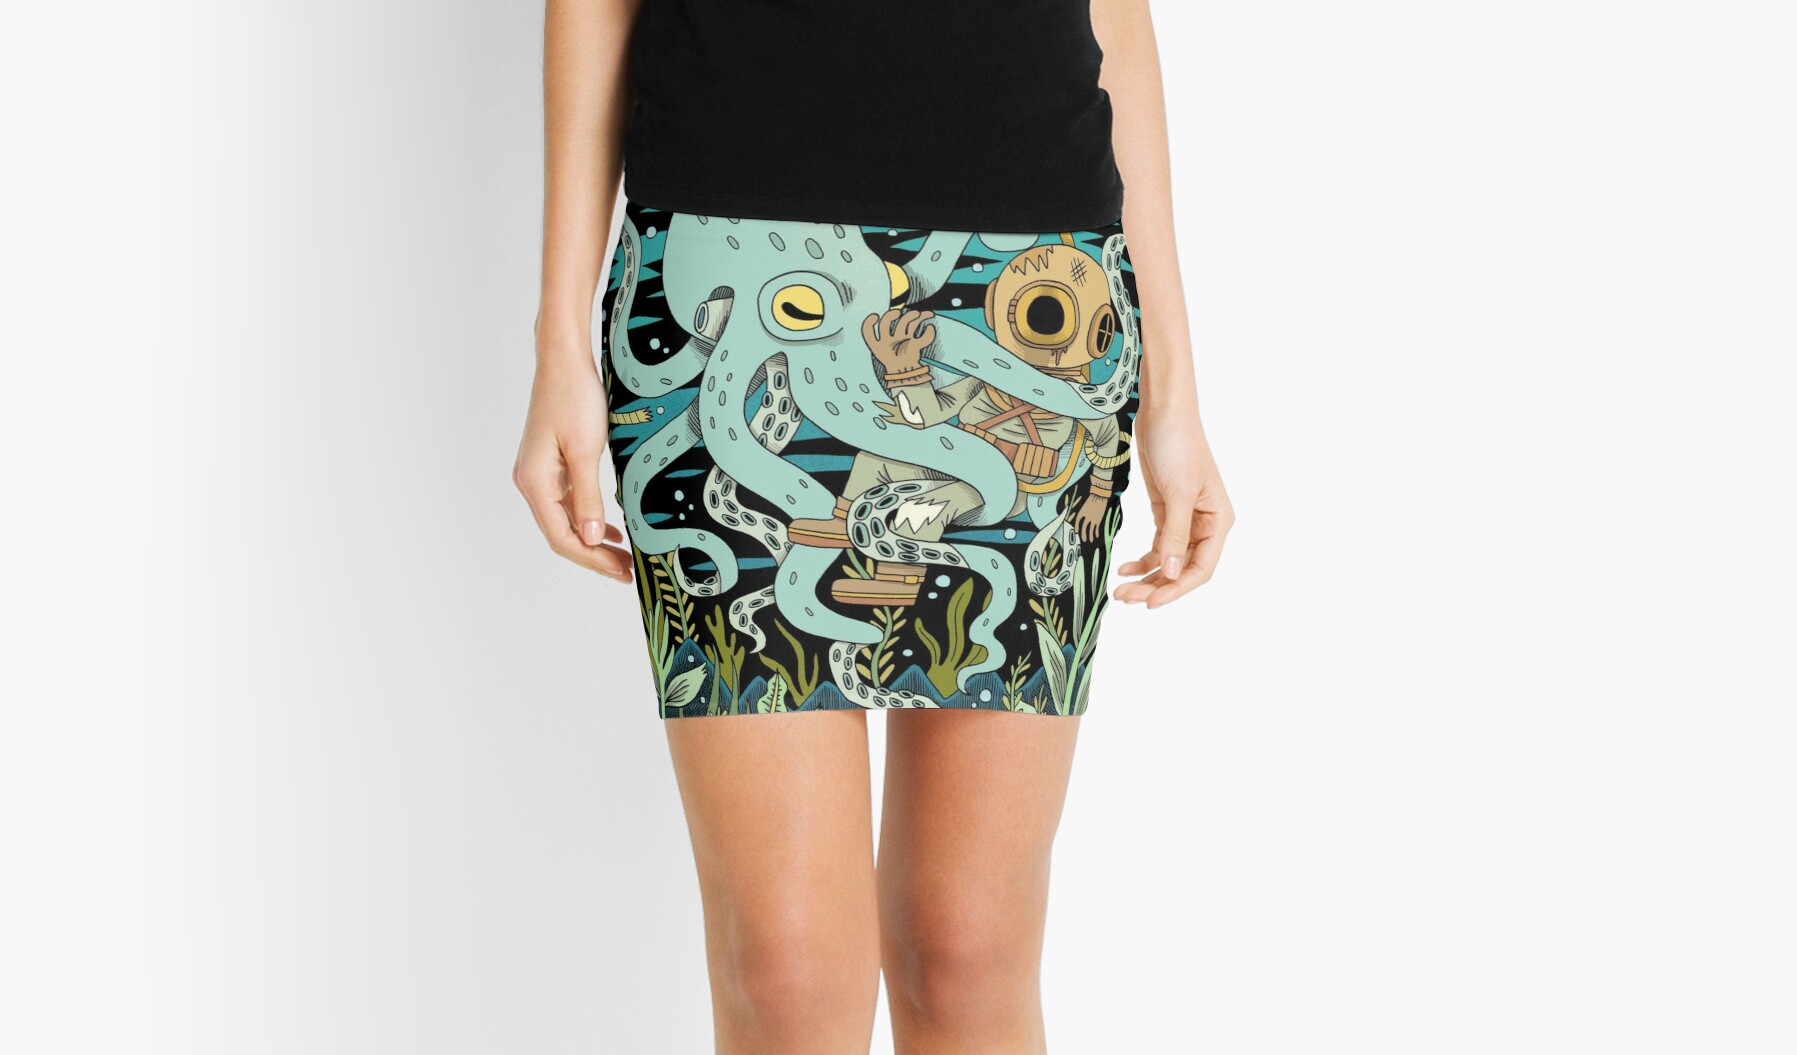 Diver by jackteagle